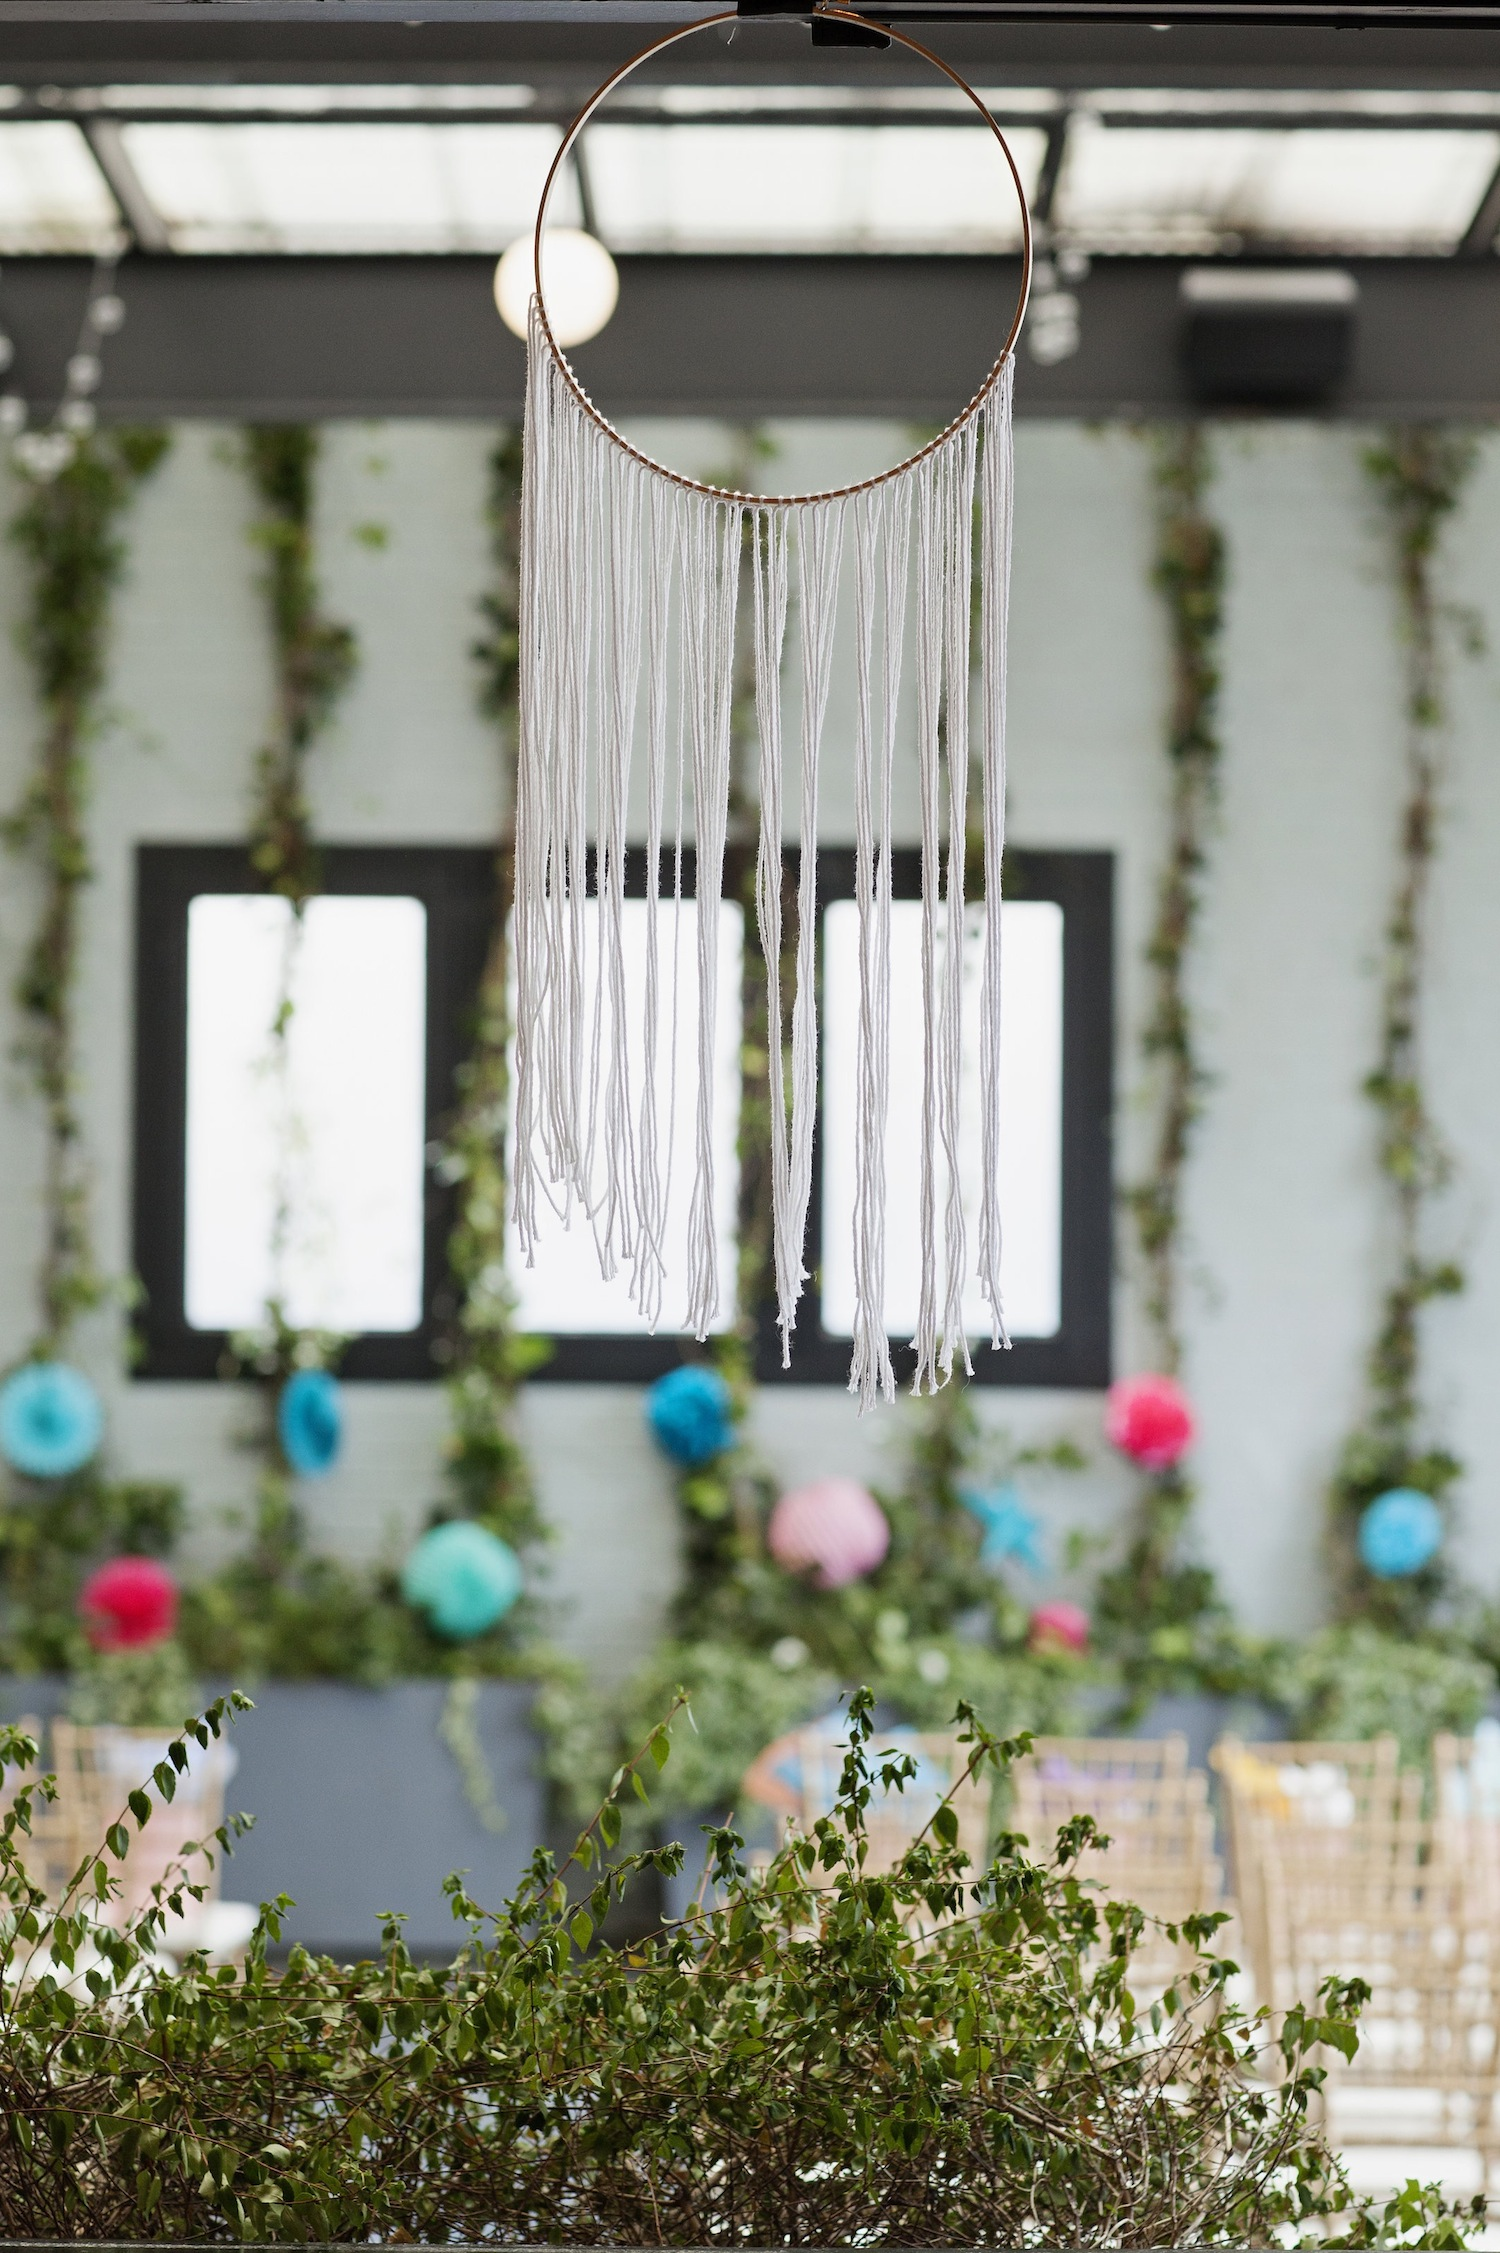 diy-minimalist-dream-catcher-1